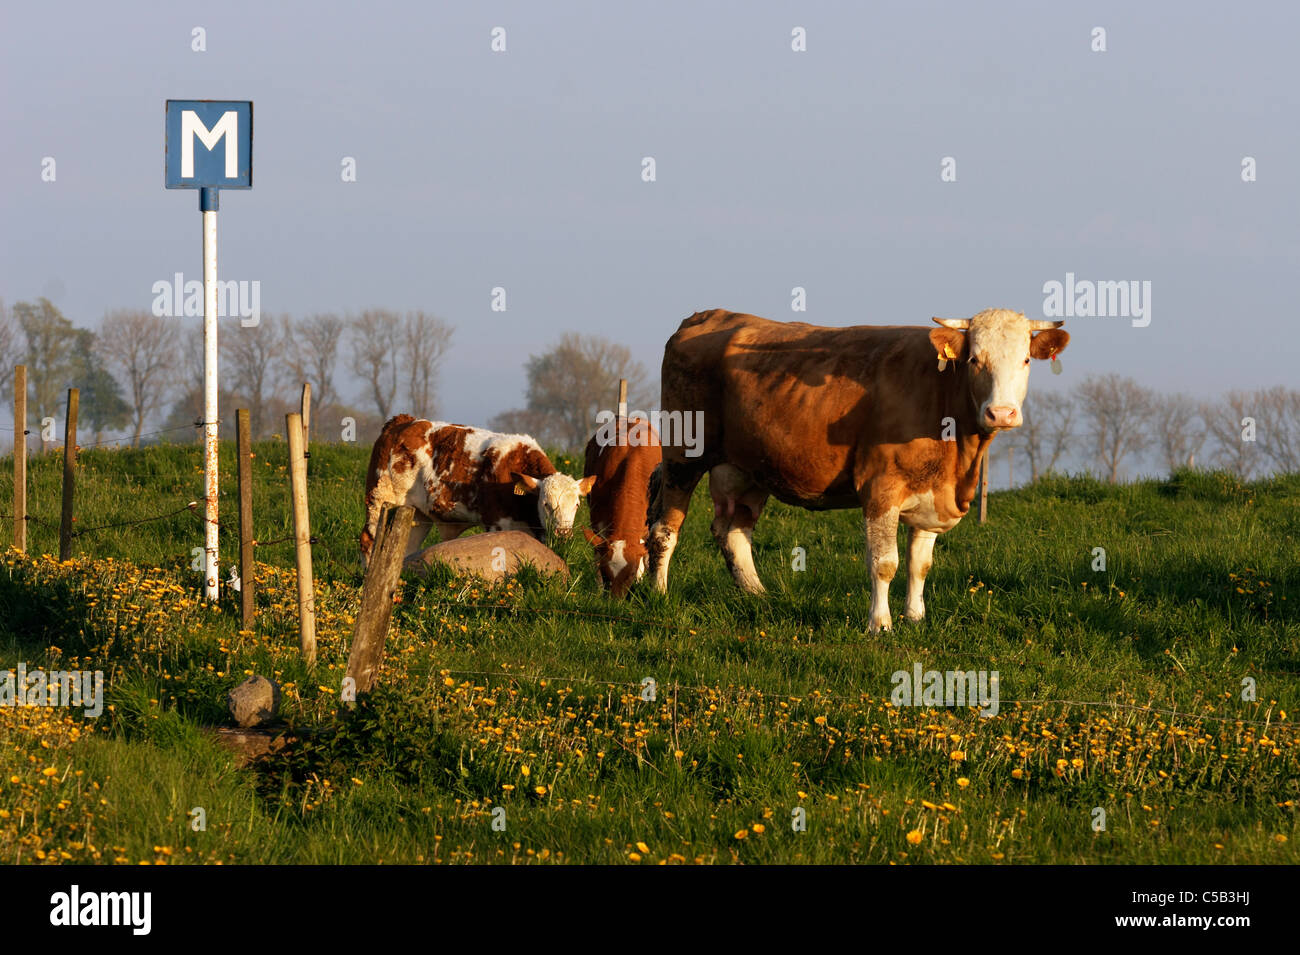 Signboard by cow with calves at an enclosed pasture - Stock Image